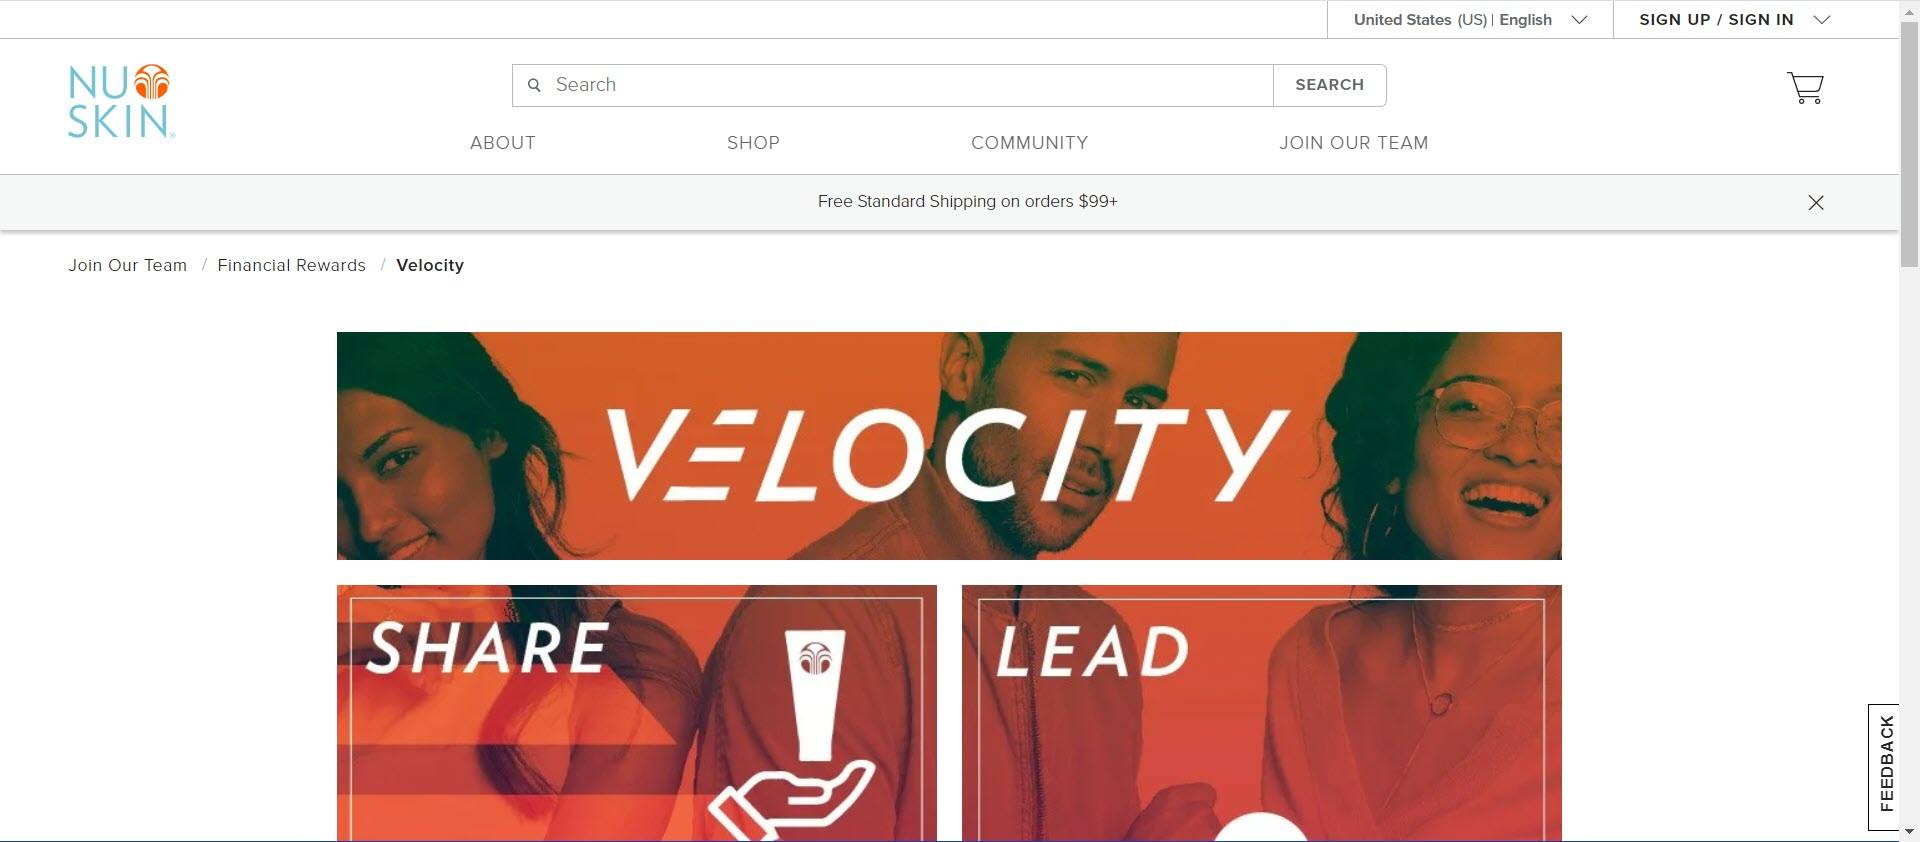 is nu skin MLM - velocity page